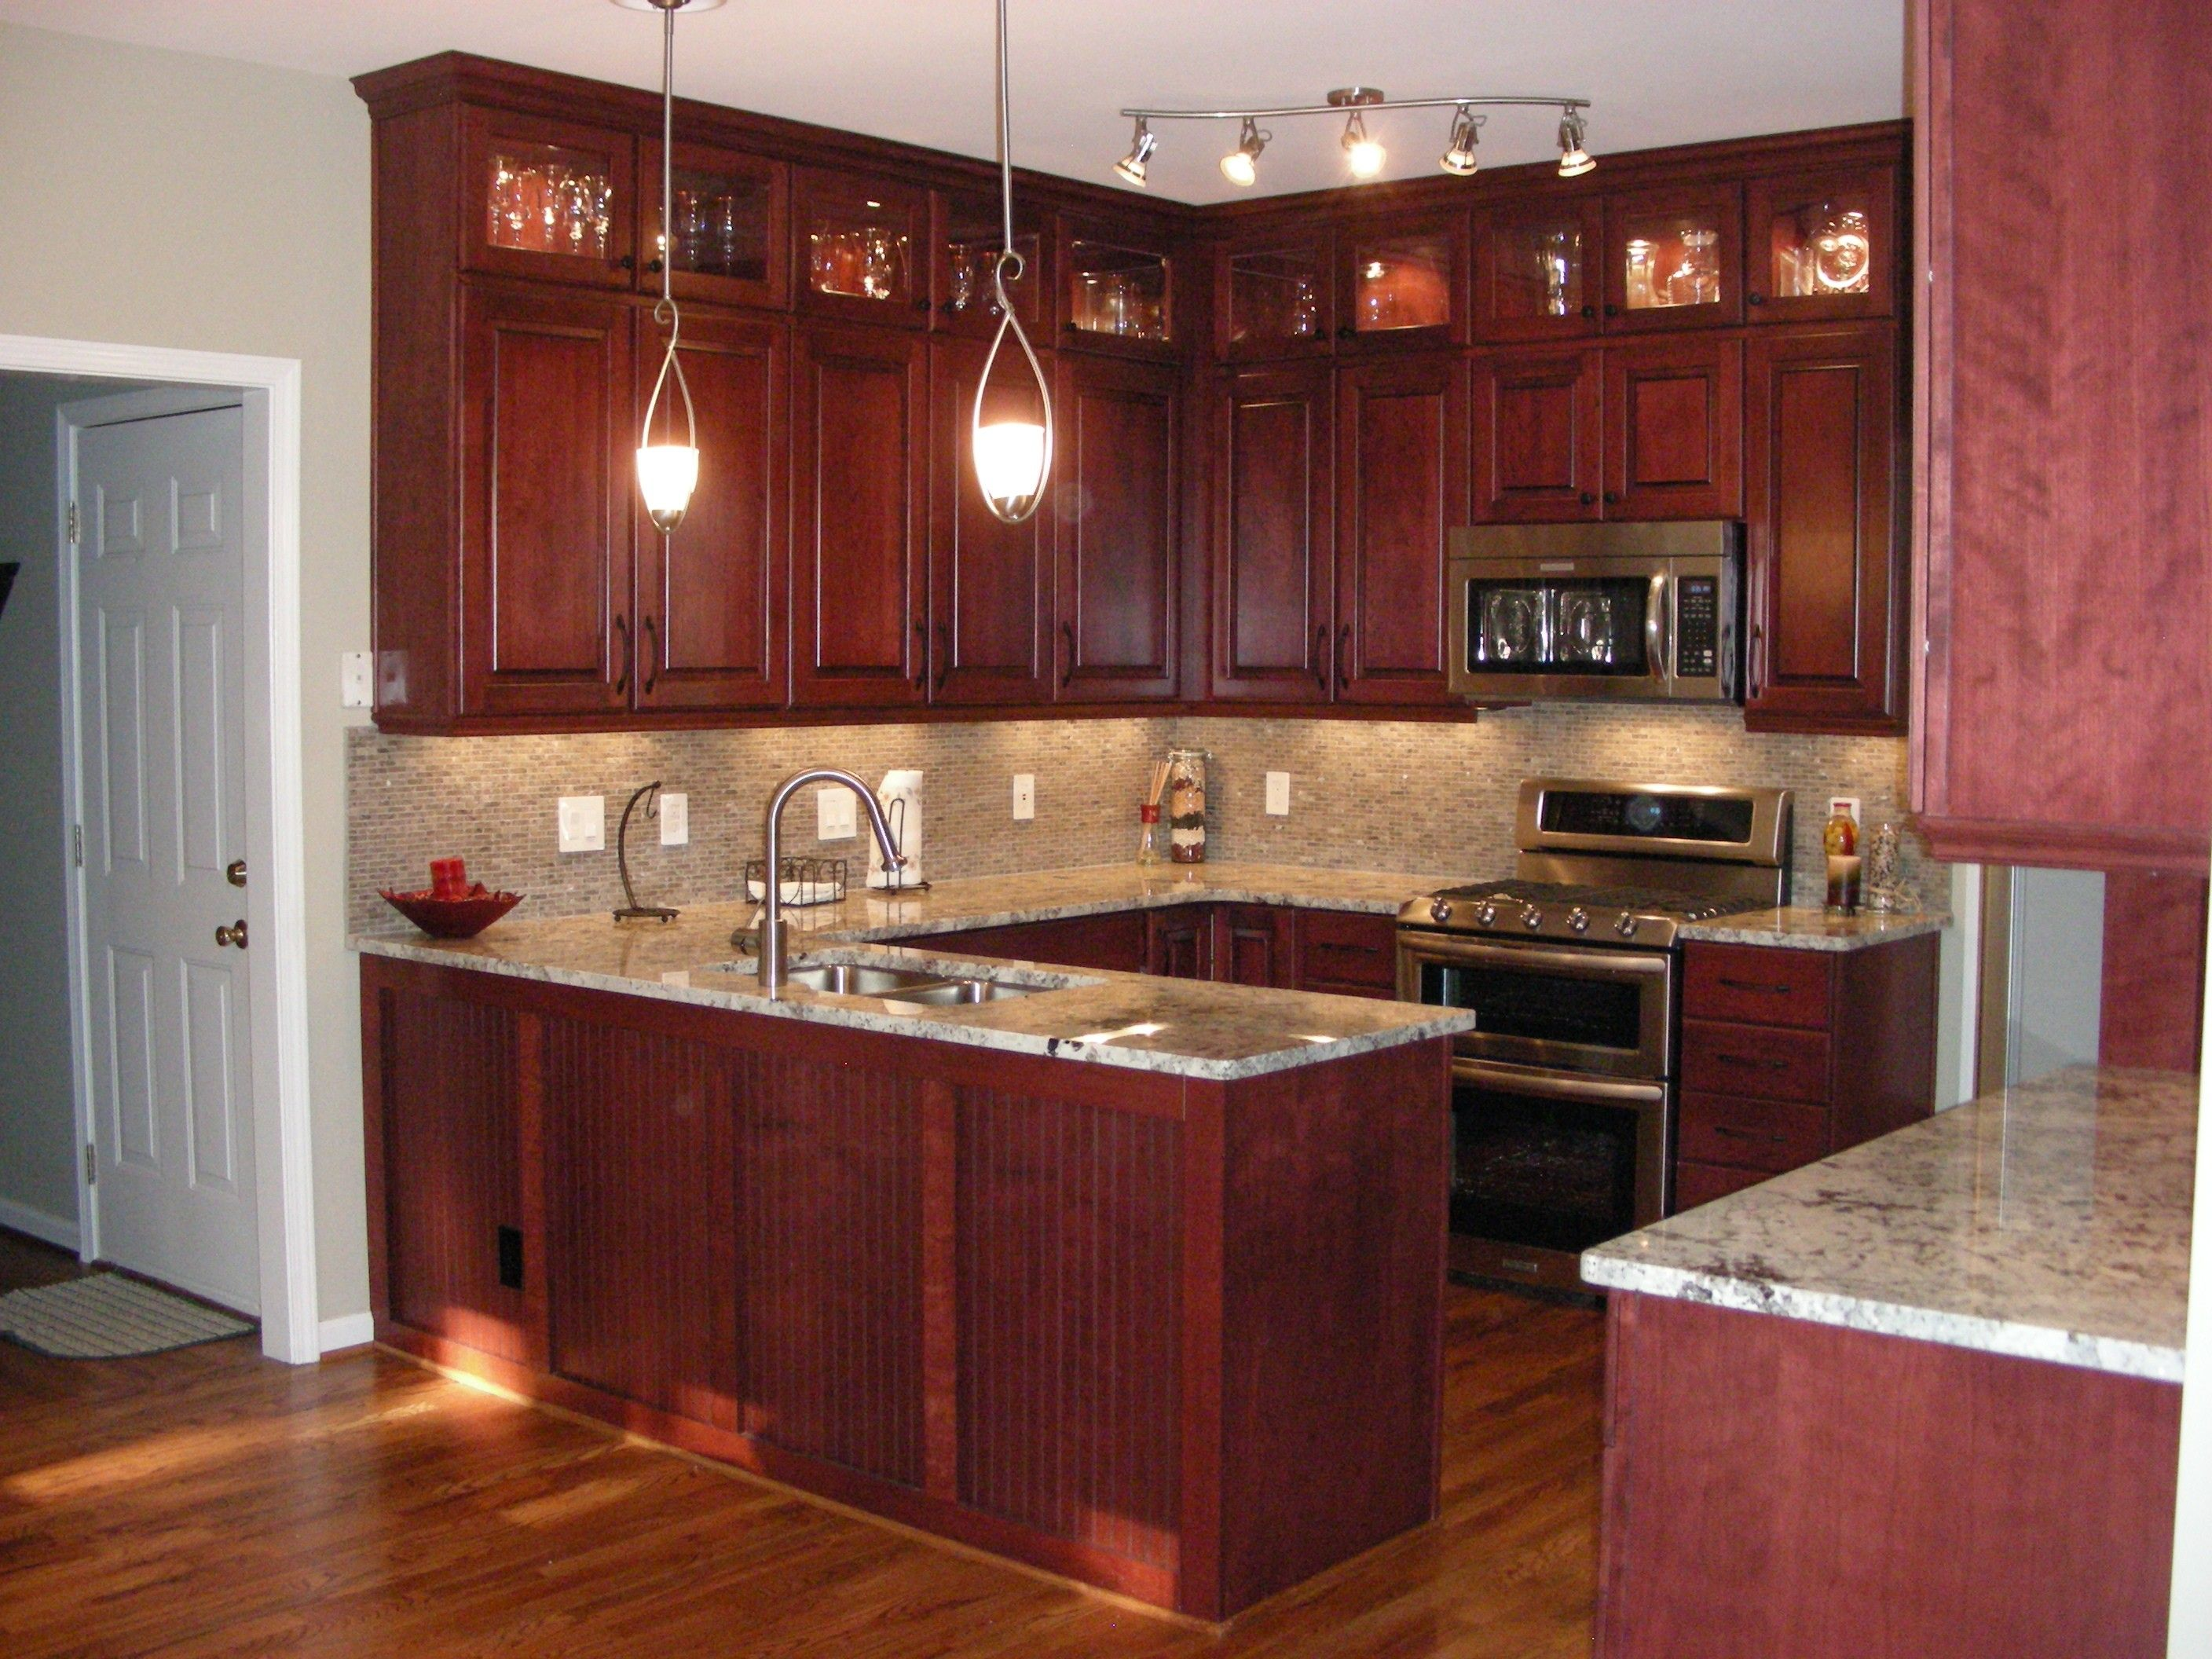 Kitchen designs cherry wood cabinets - Kitchen Cherry Cabinets With Black Granite Countertops Cherry Kitchen Cabinets With Backsplash Cherry Kitchen Cabinets White Appliances Cherry Kitchen